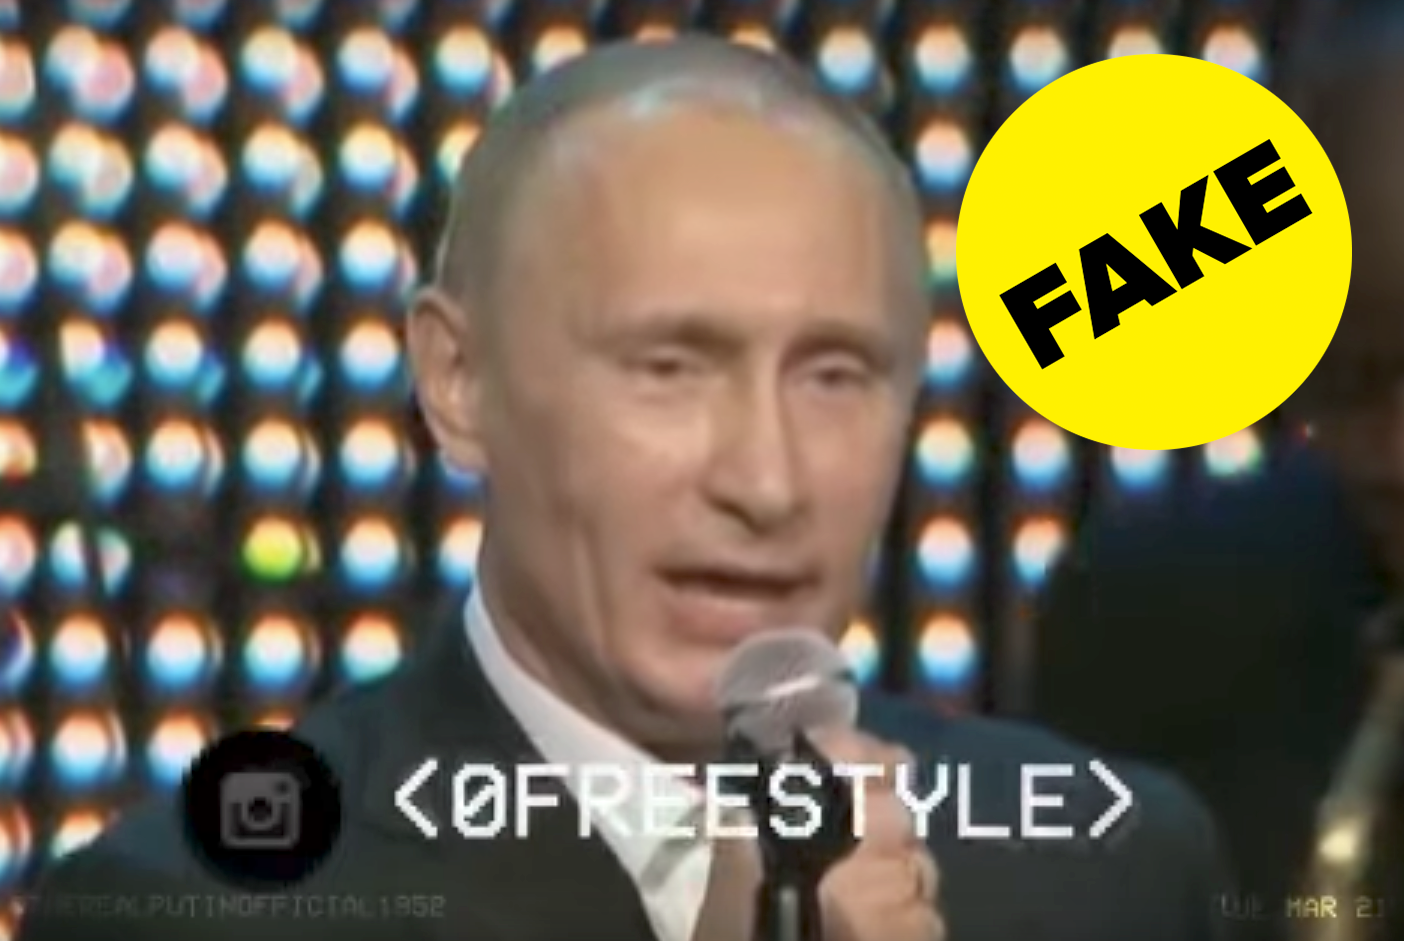 No This Video Of Putin Singing Creep Is Not Real